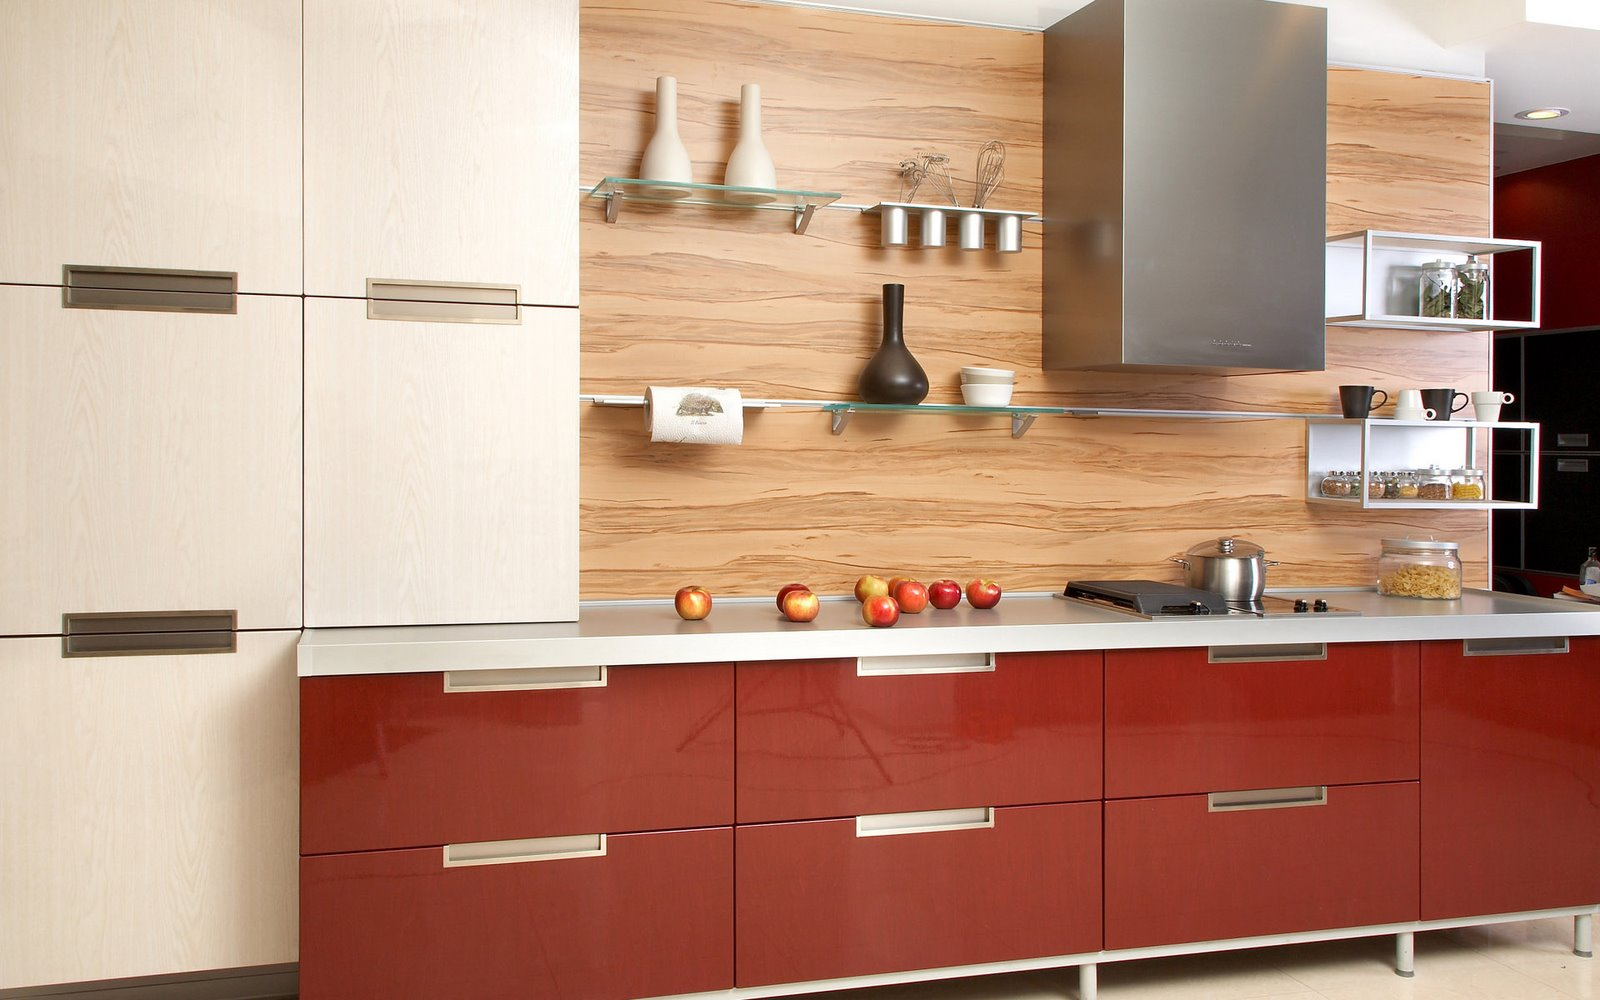 Modern wood kitchen design dream kitchens pinterest kitchen designs kitchens and open New contemporary kitchen design